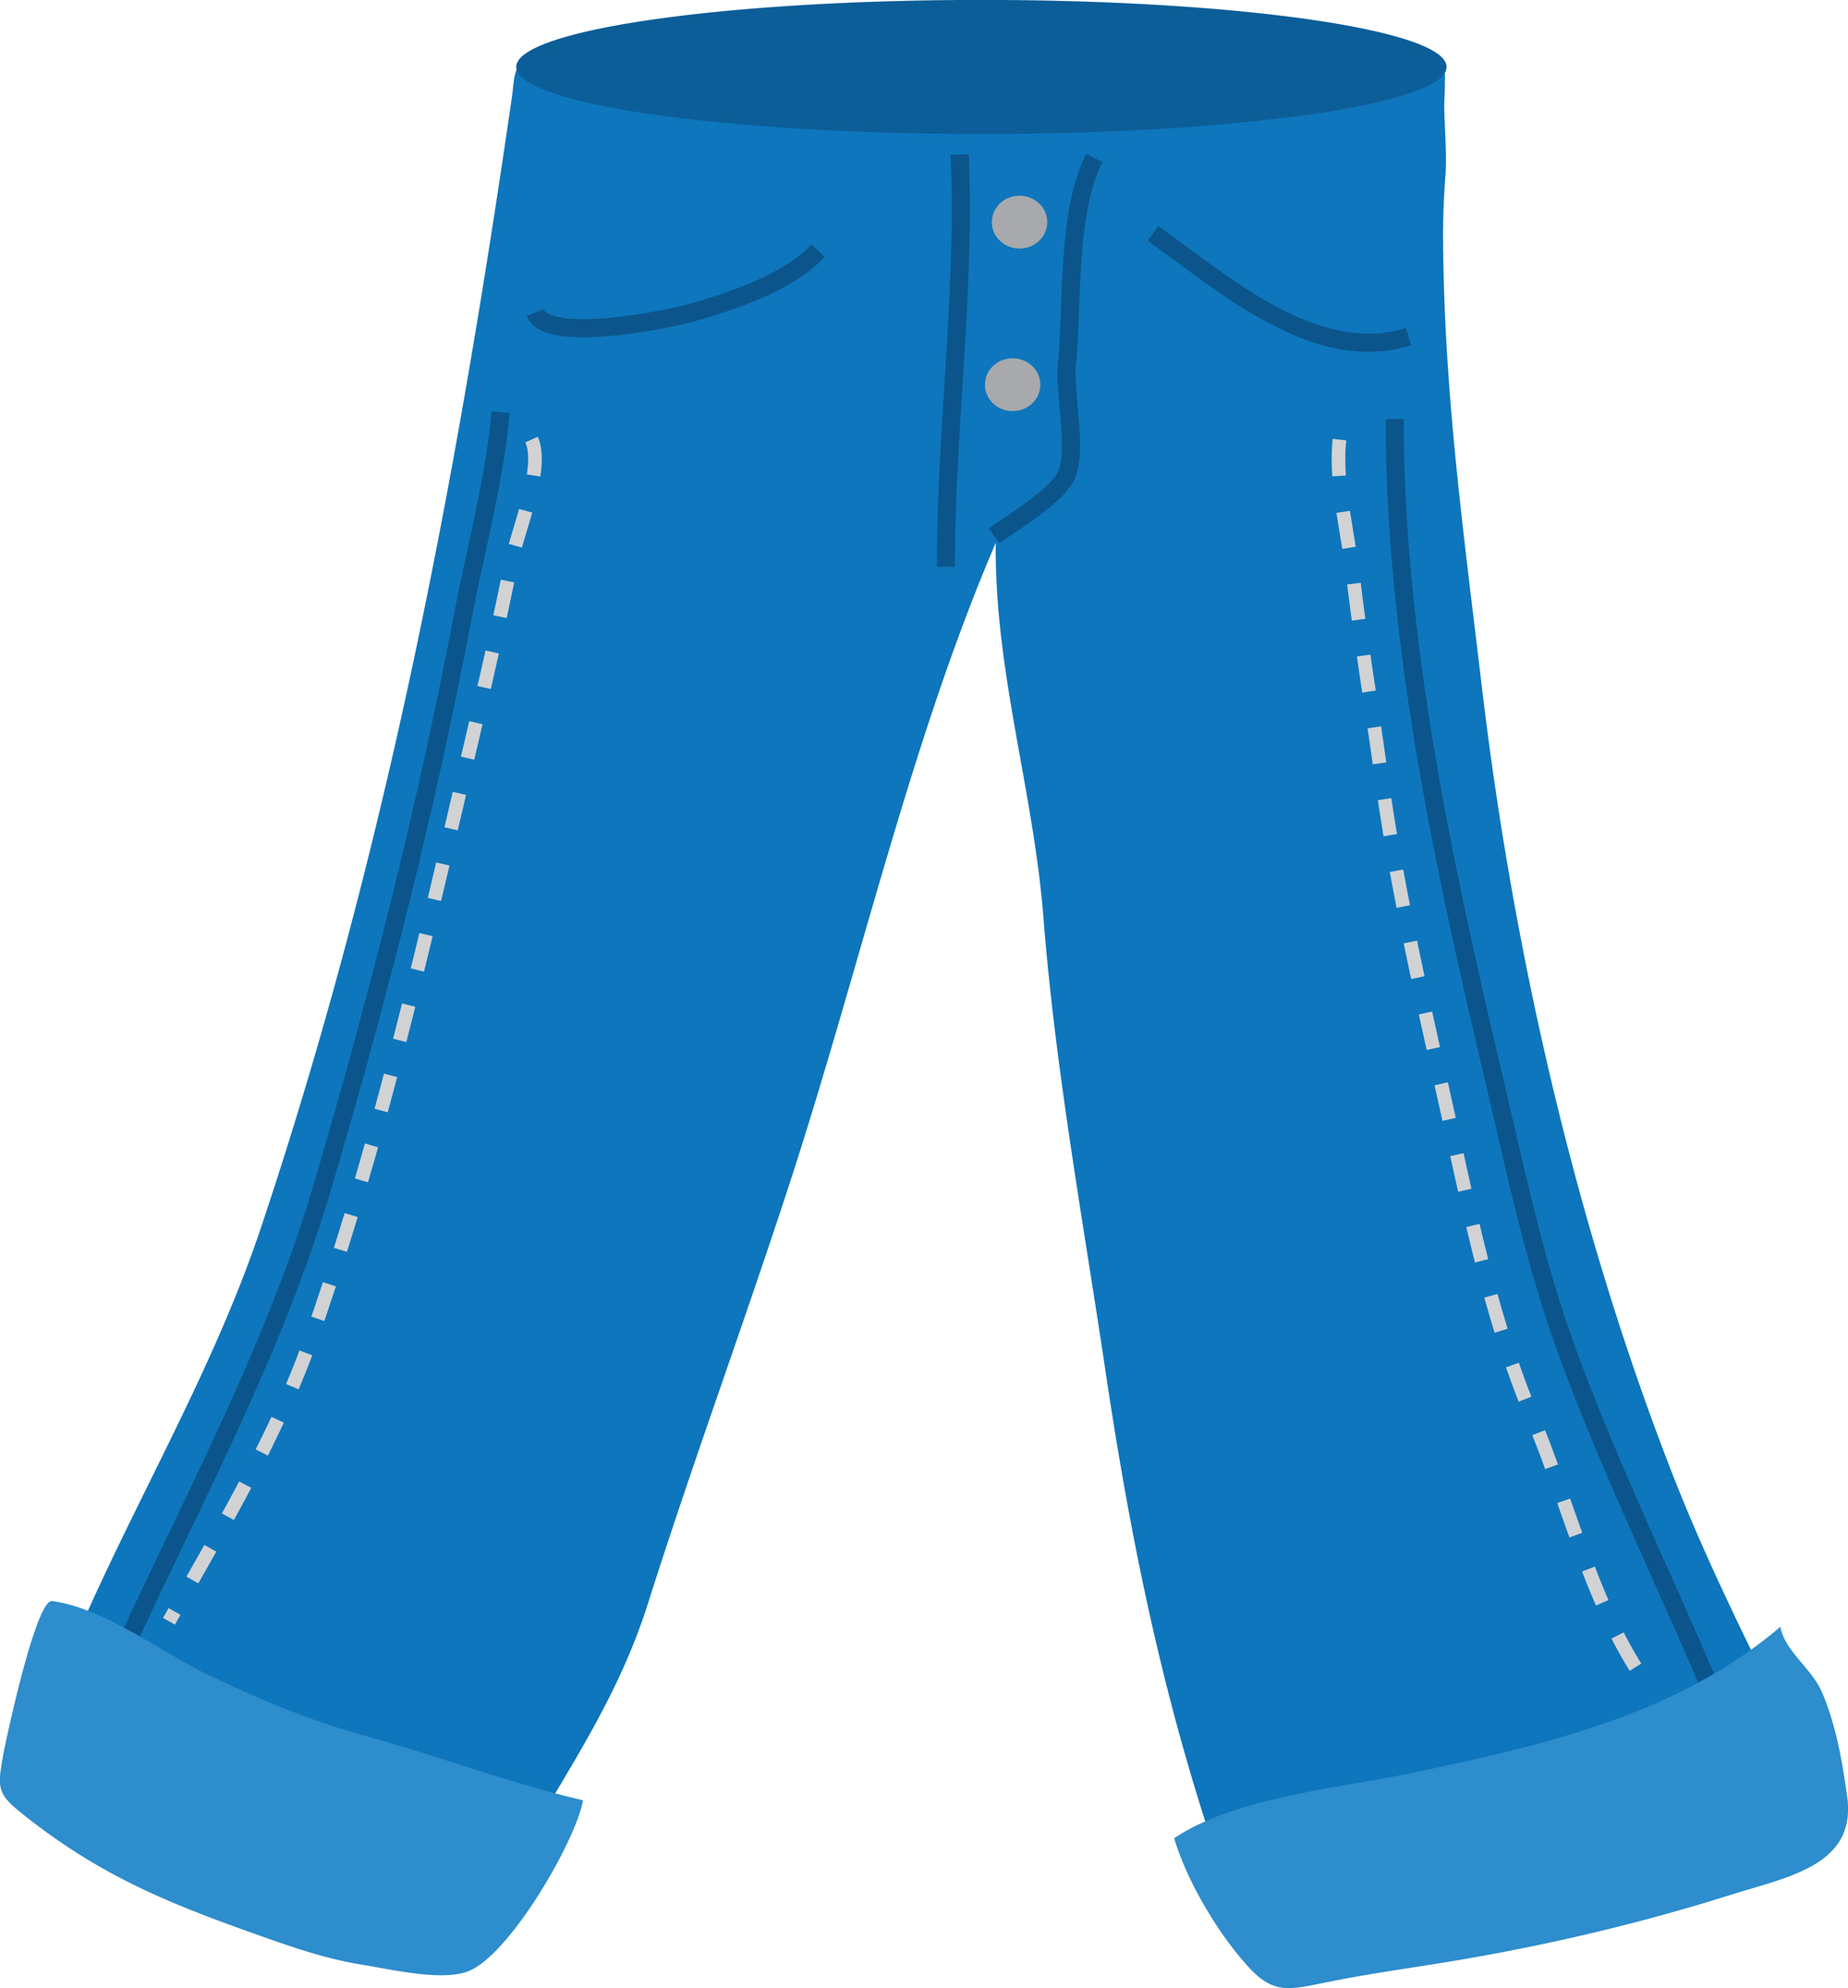 Inventive Denim Blue Jean Clip Art